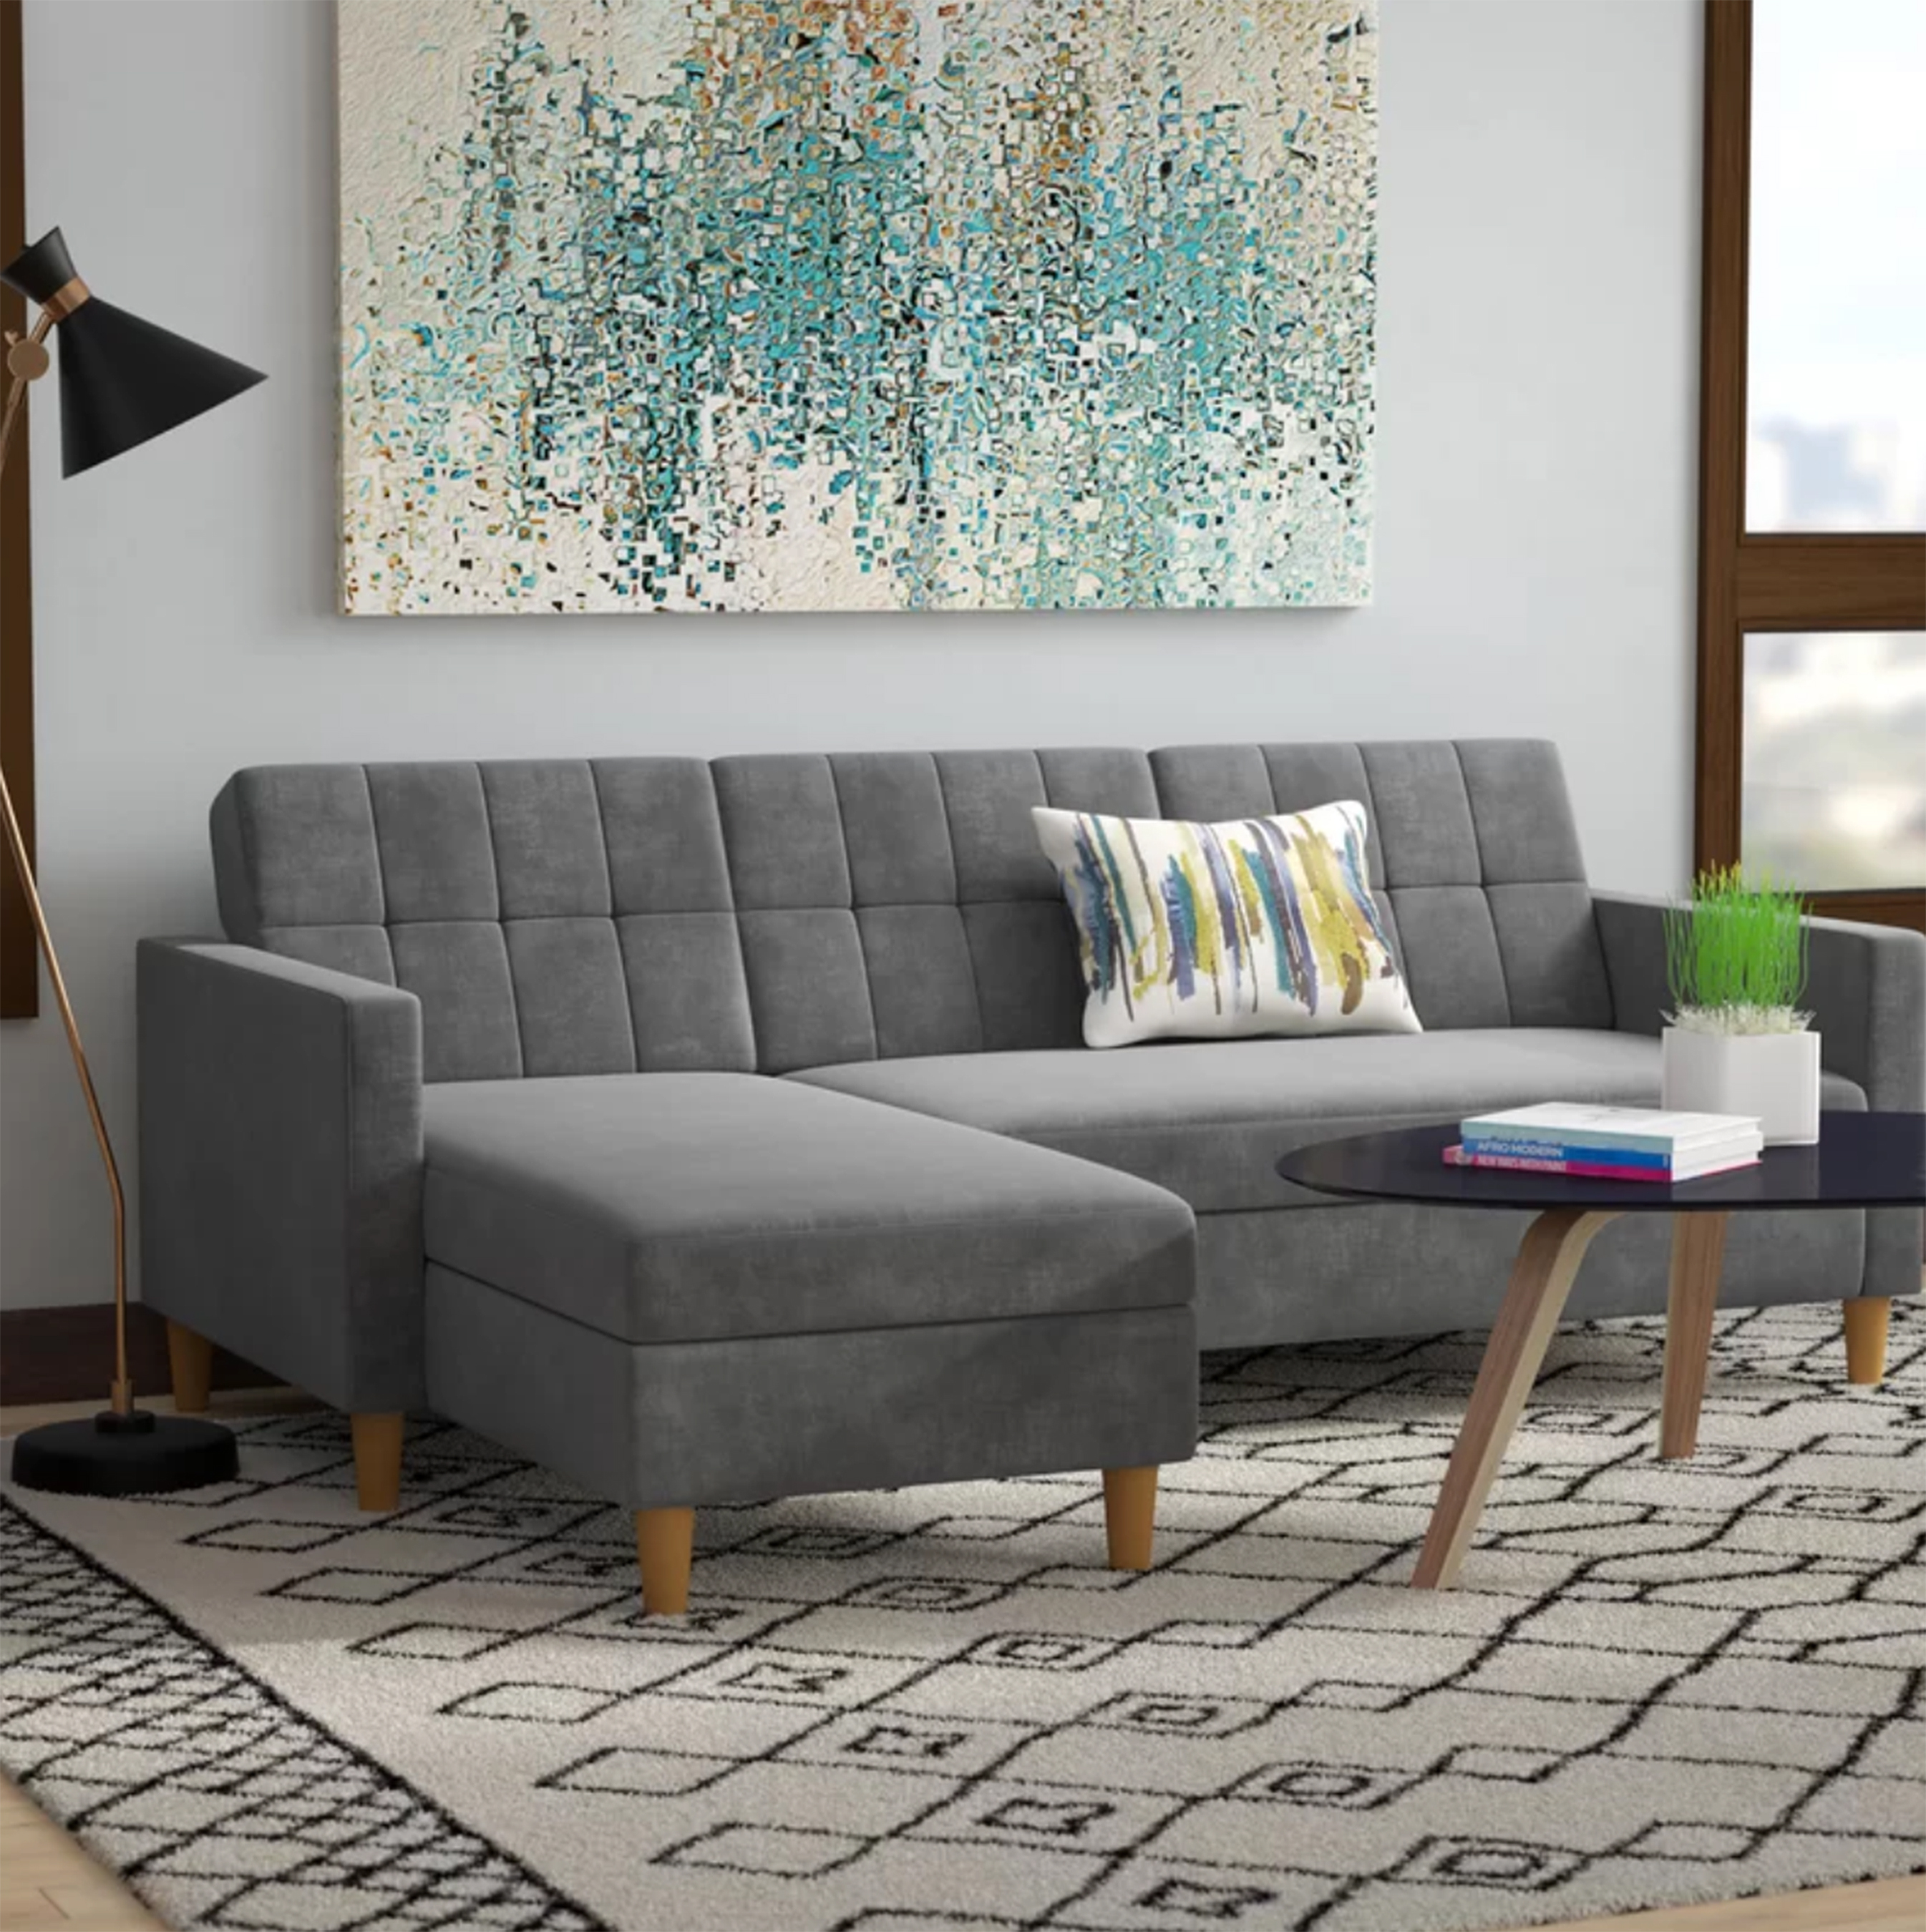 find the best silver birch squared poplar accent table couch mila square days has crazy good savings here what round glass coffee with gold base living end tables wood and large